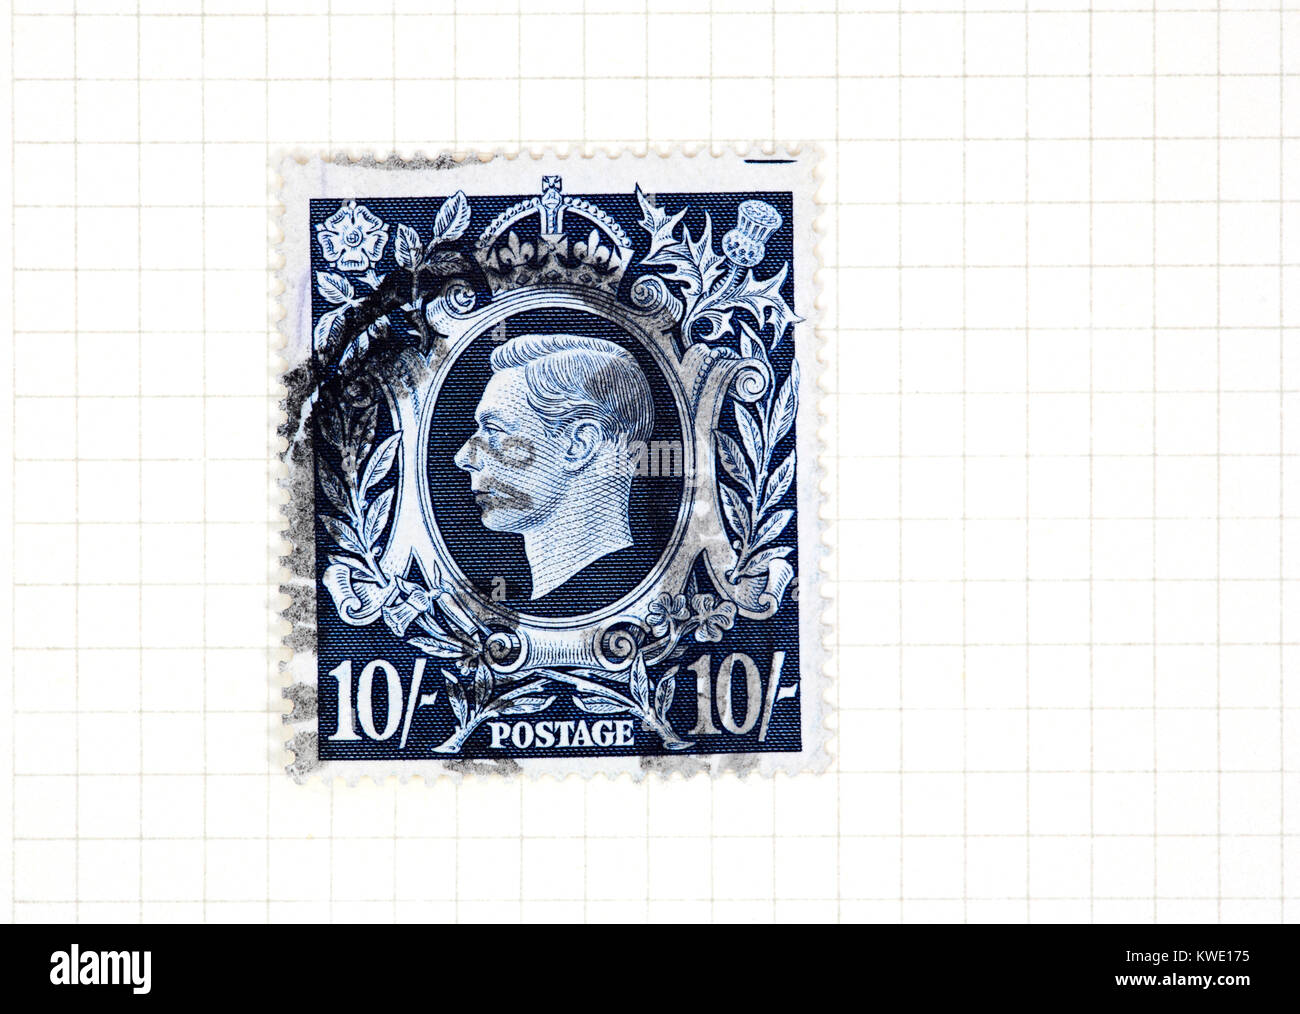 A used King George VI 10s dark blue stamp of 1939-48 issue from a collection of British stamps. - Stock Image